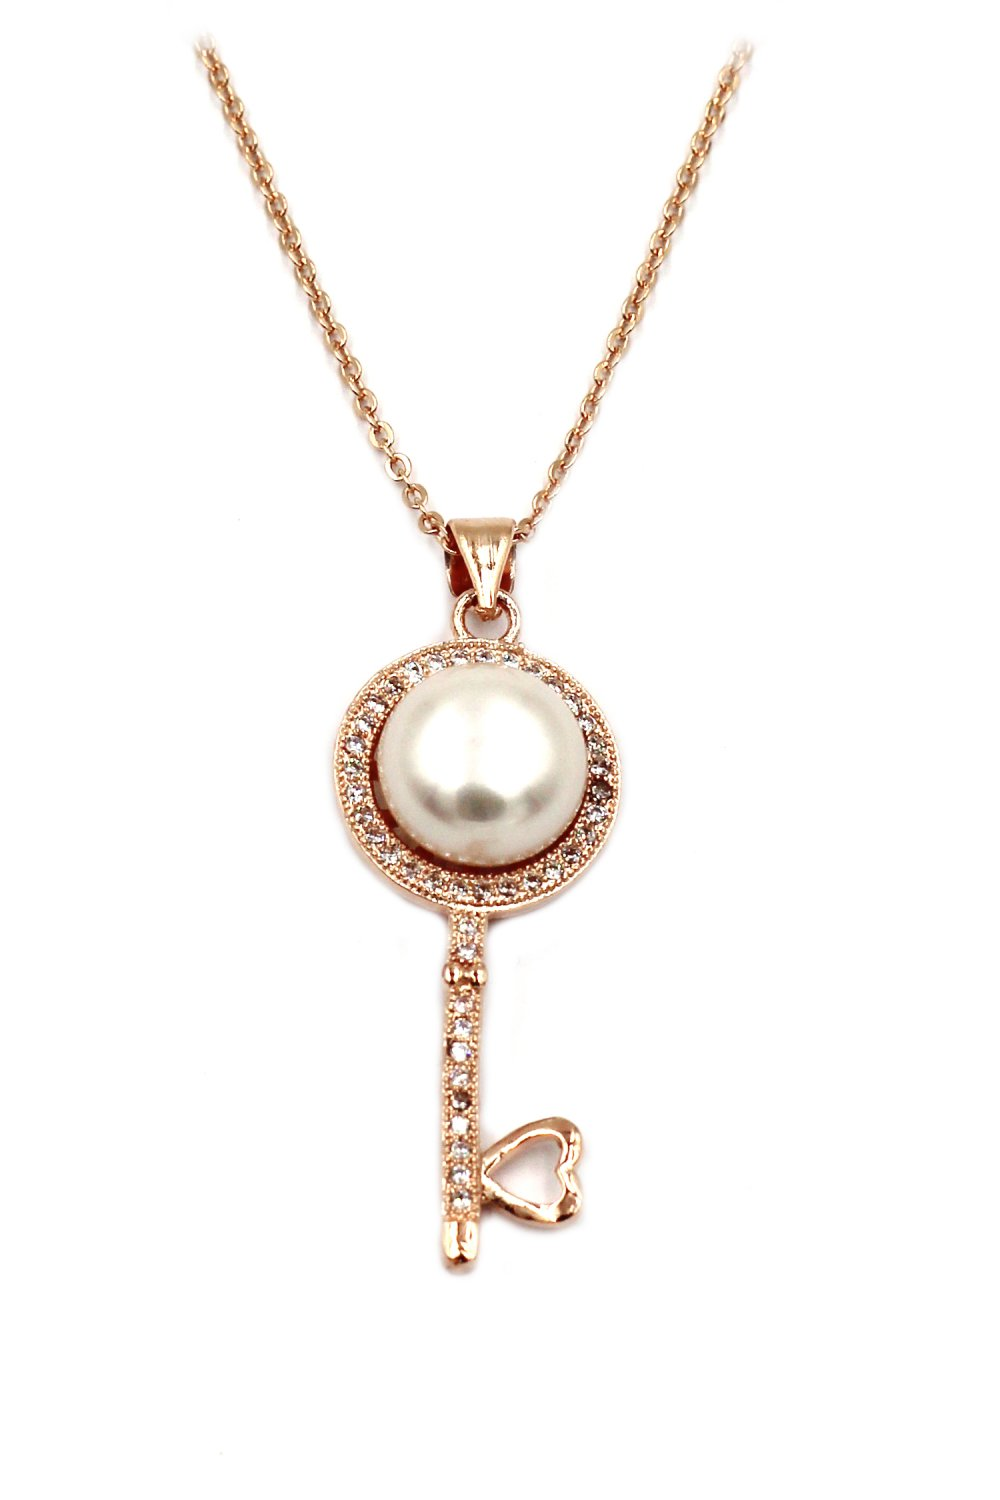 Fashion pearl and crystal key rose gold necklace